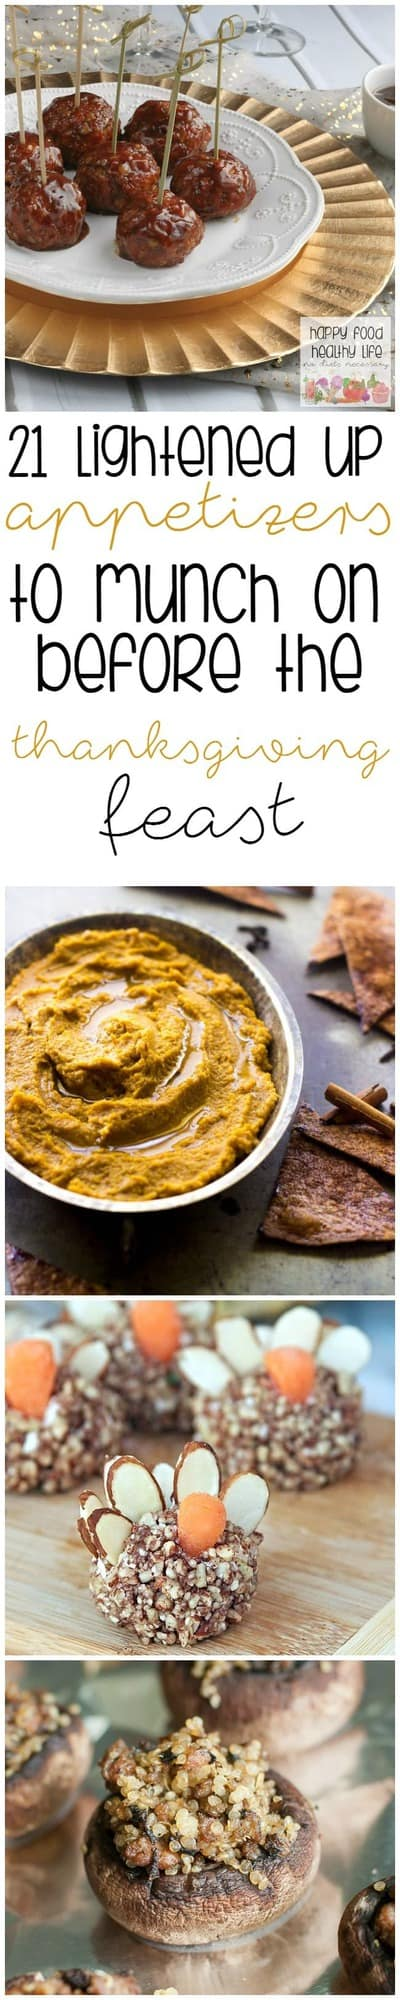 21 Lightened-Up Appetizers to Munch on Before Your Thanksgiving Feast - healthy recipes when you're waiting for dinner to be served!